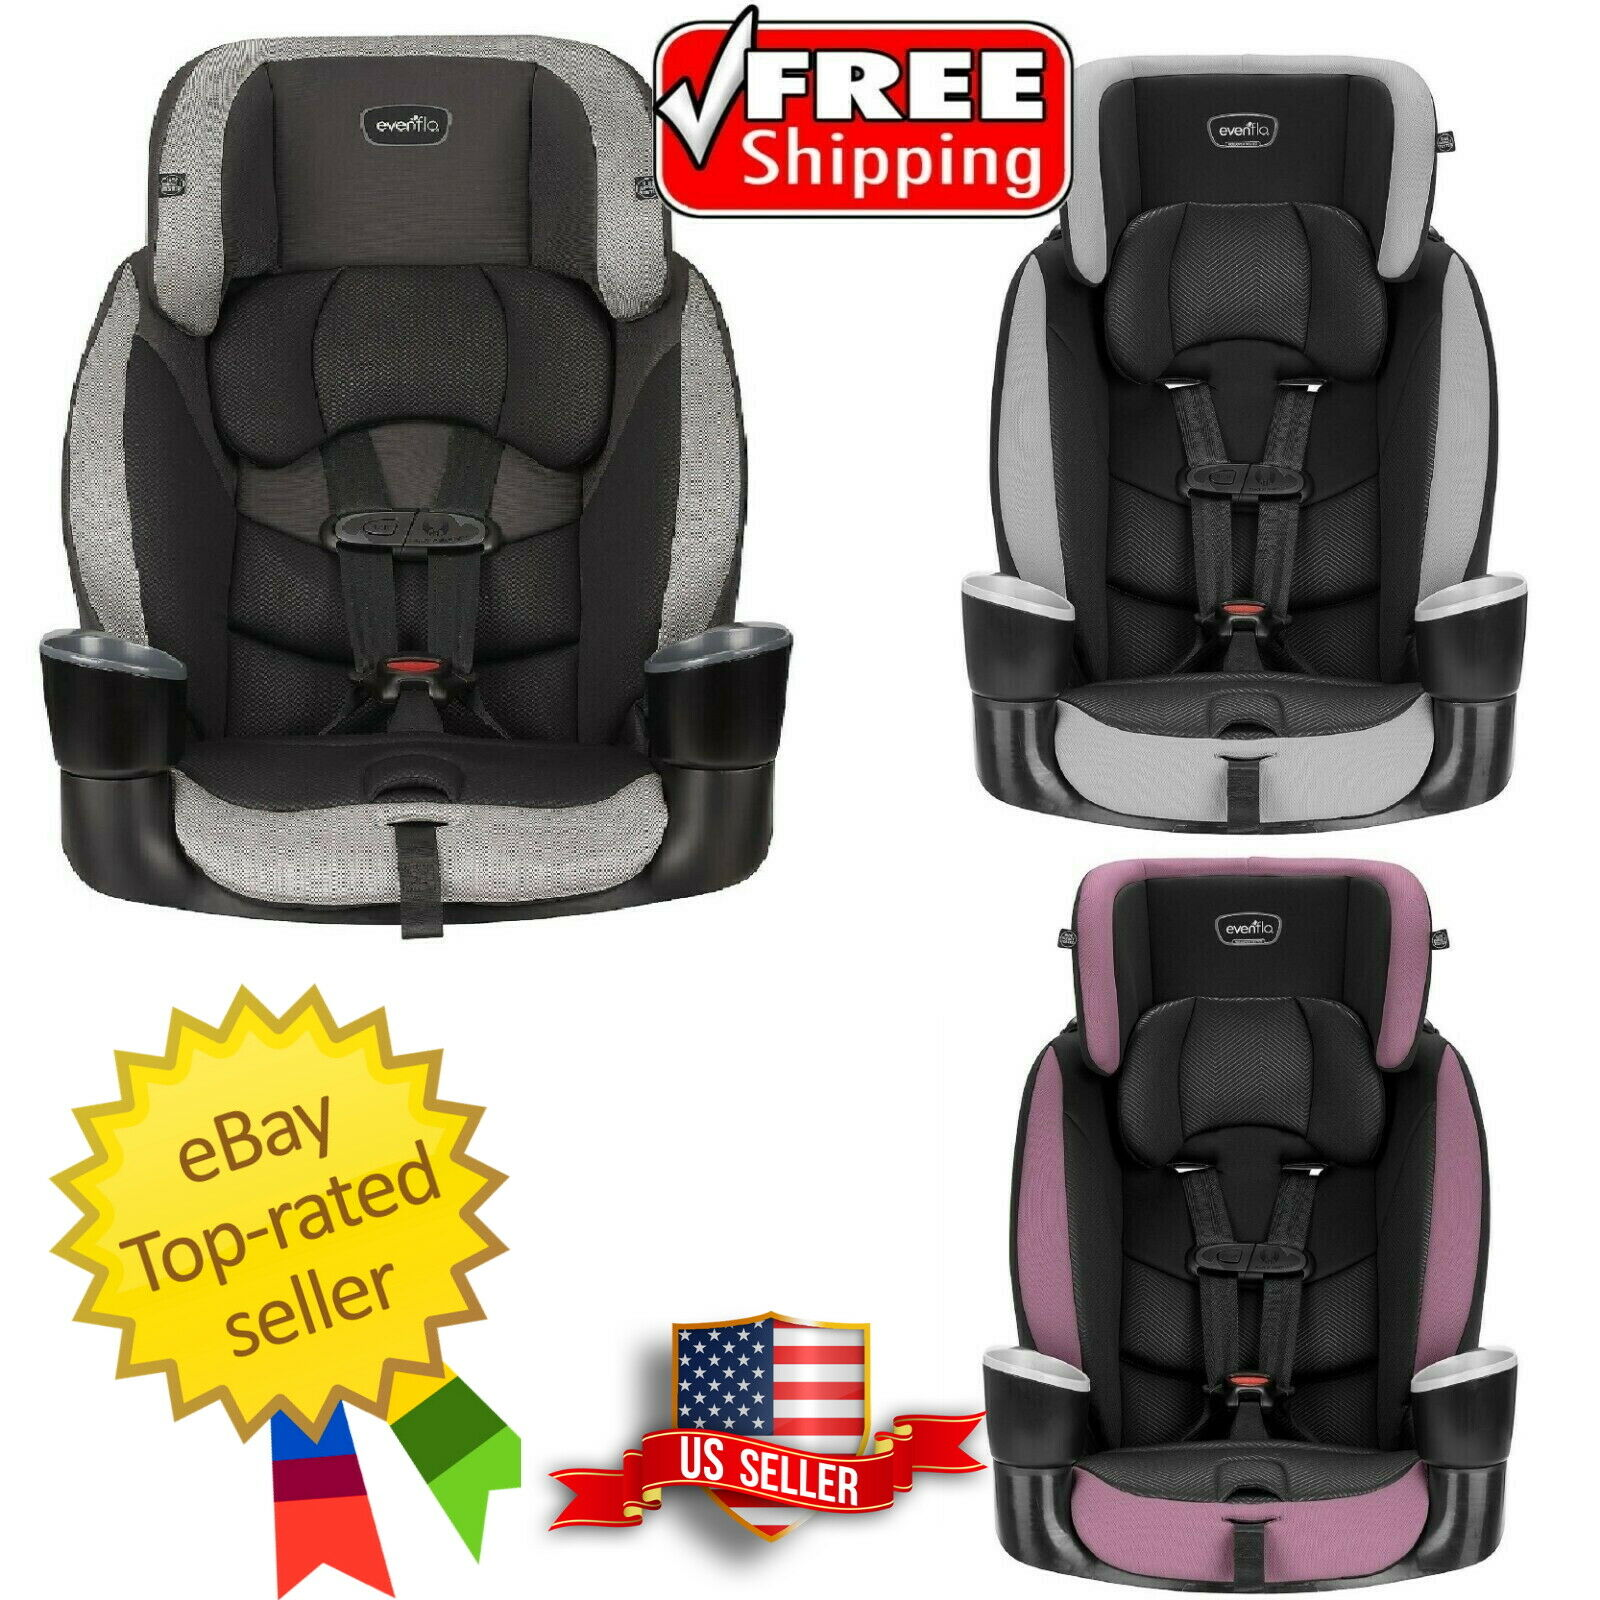 Evenflo Maestro Sport Harness Booster Car Seat - Choose Your